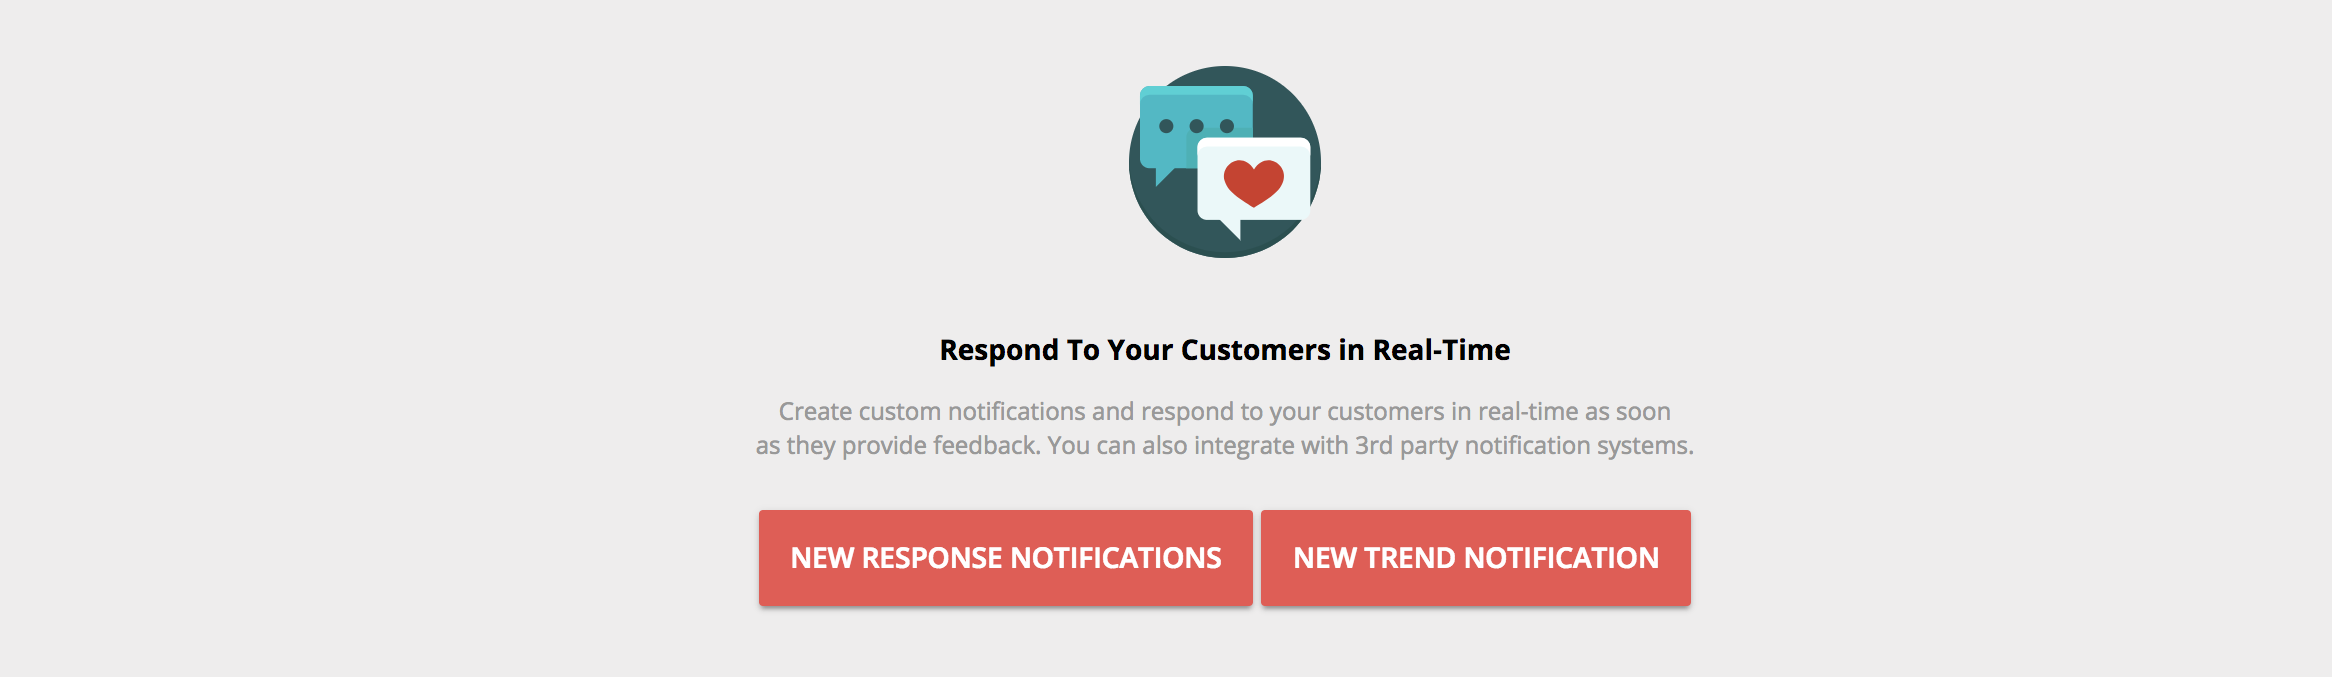 MyTrendNotifications/Trend2.png